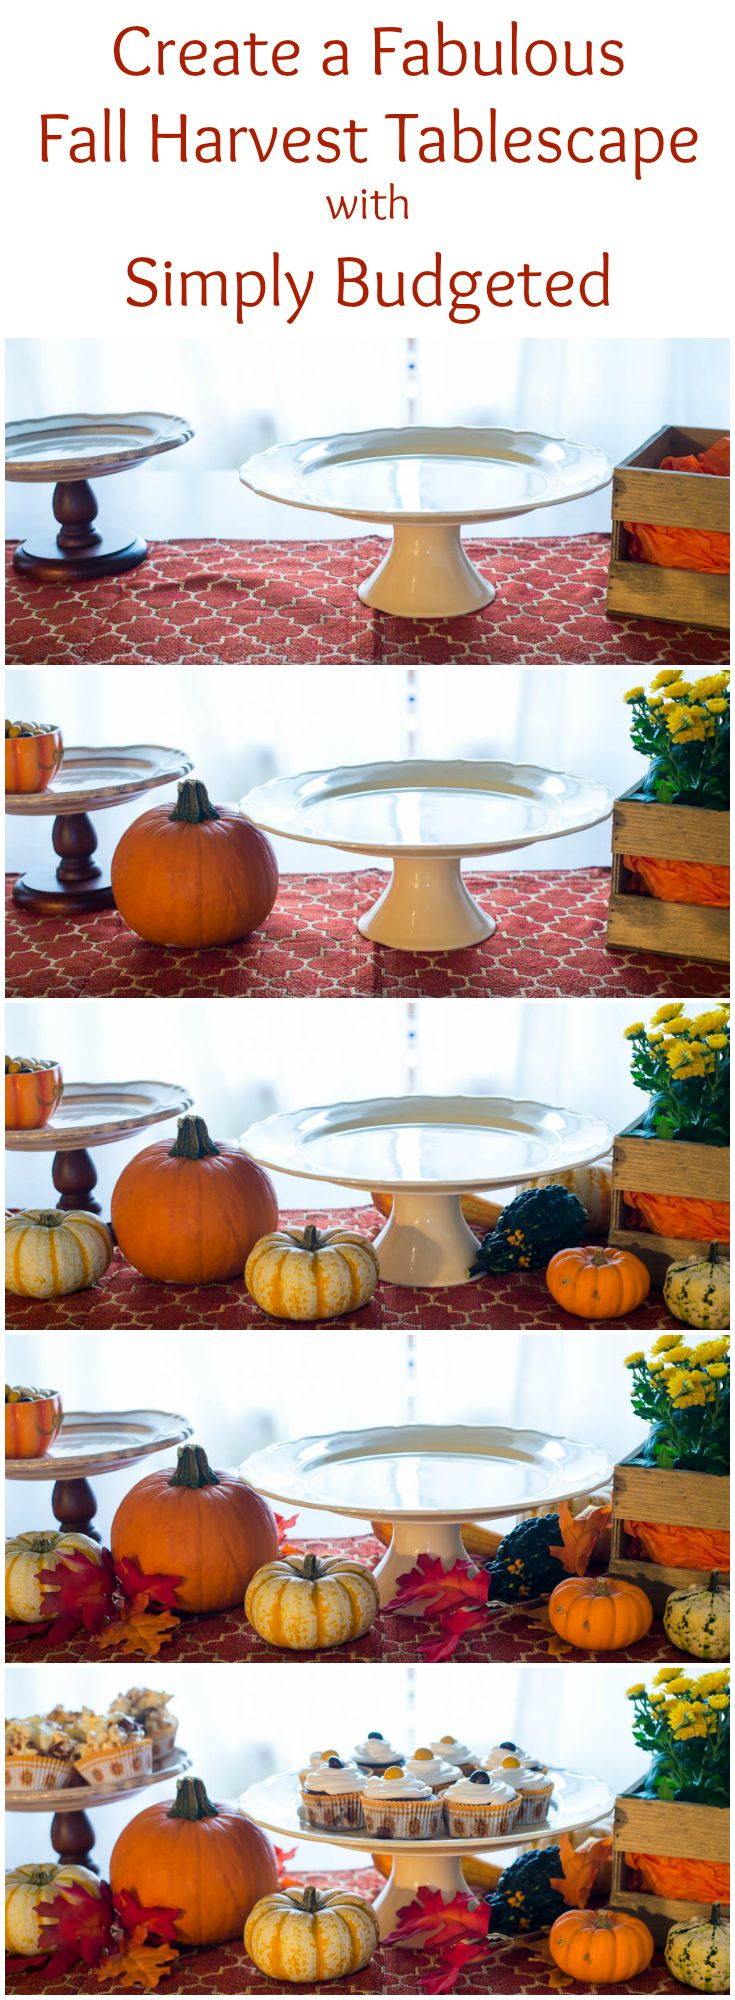 Fall-Harvest-Tablescape-Collage